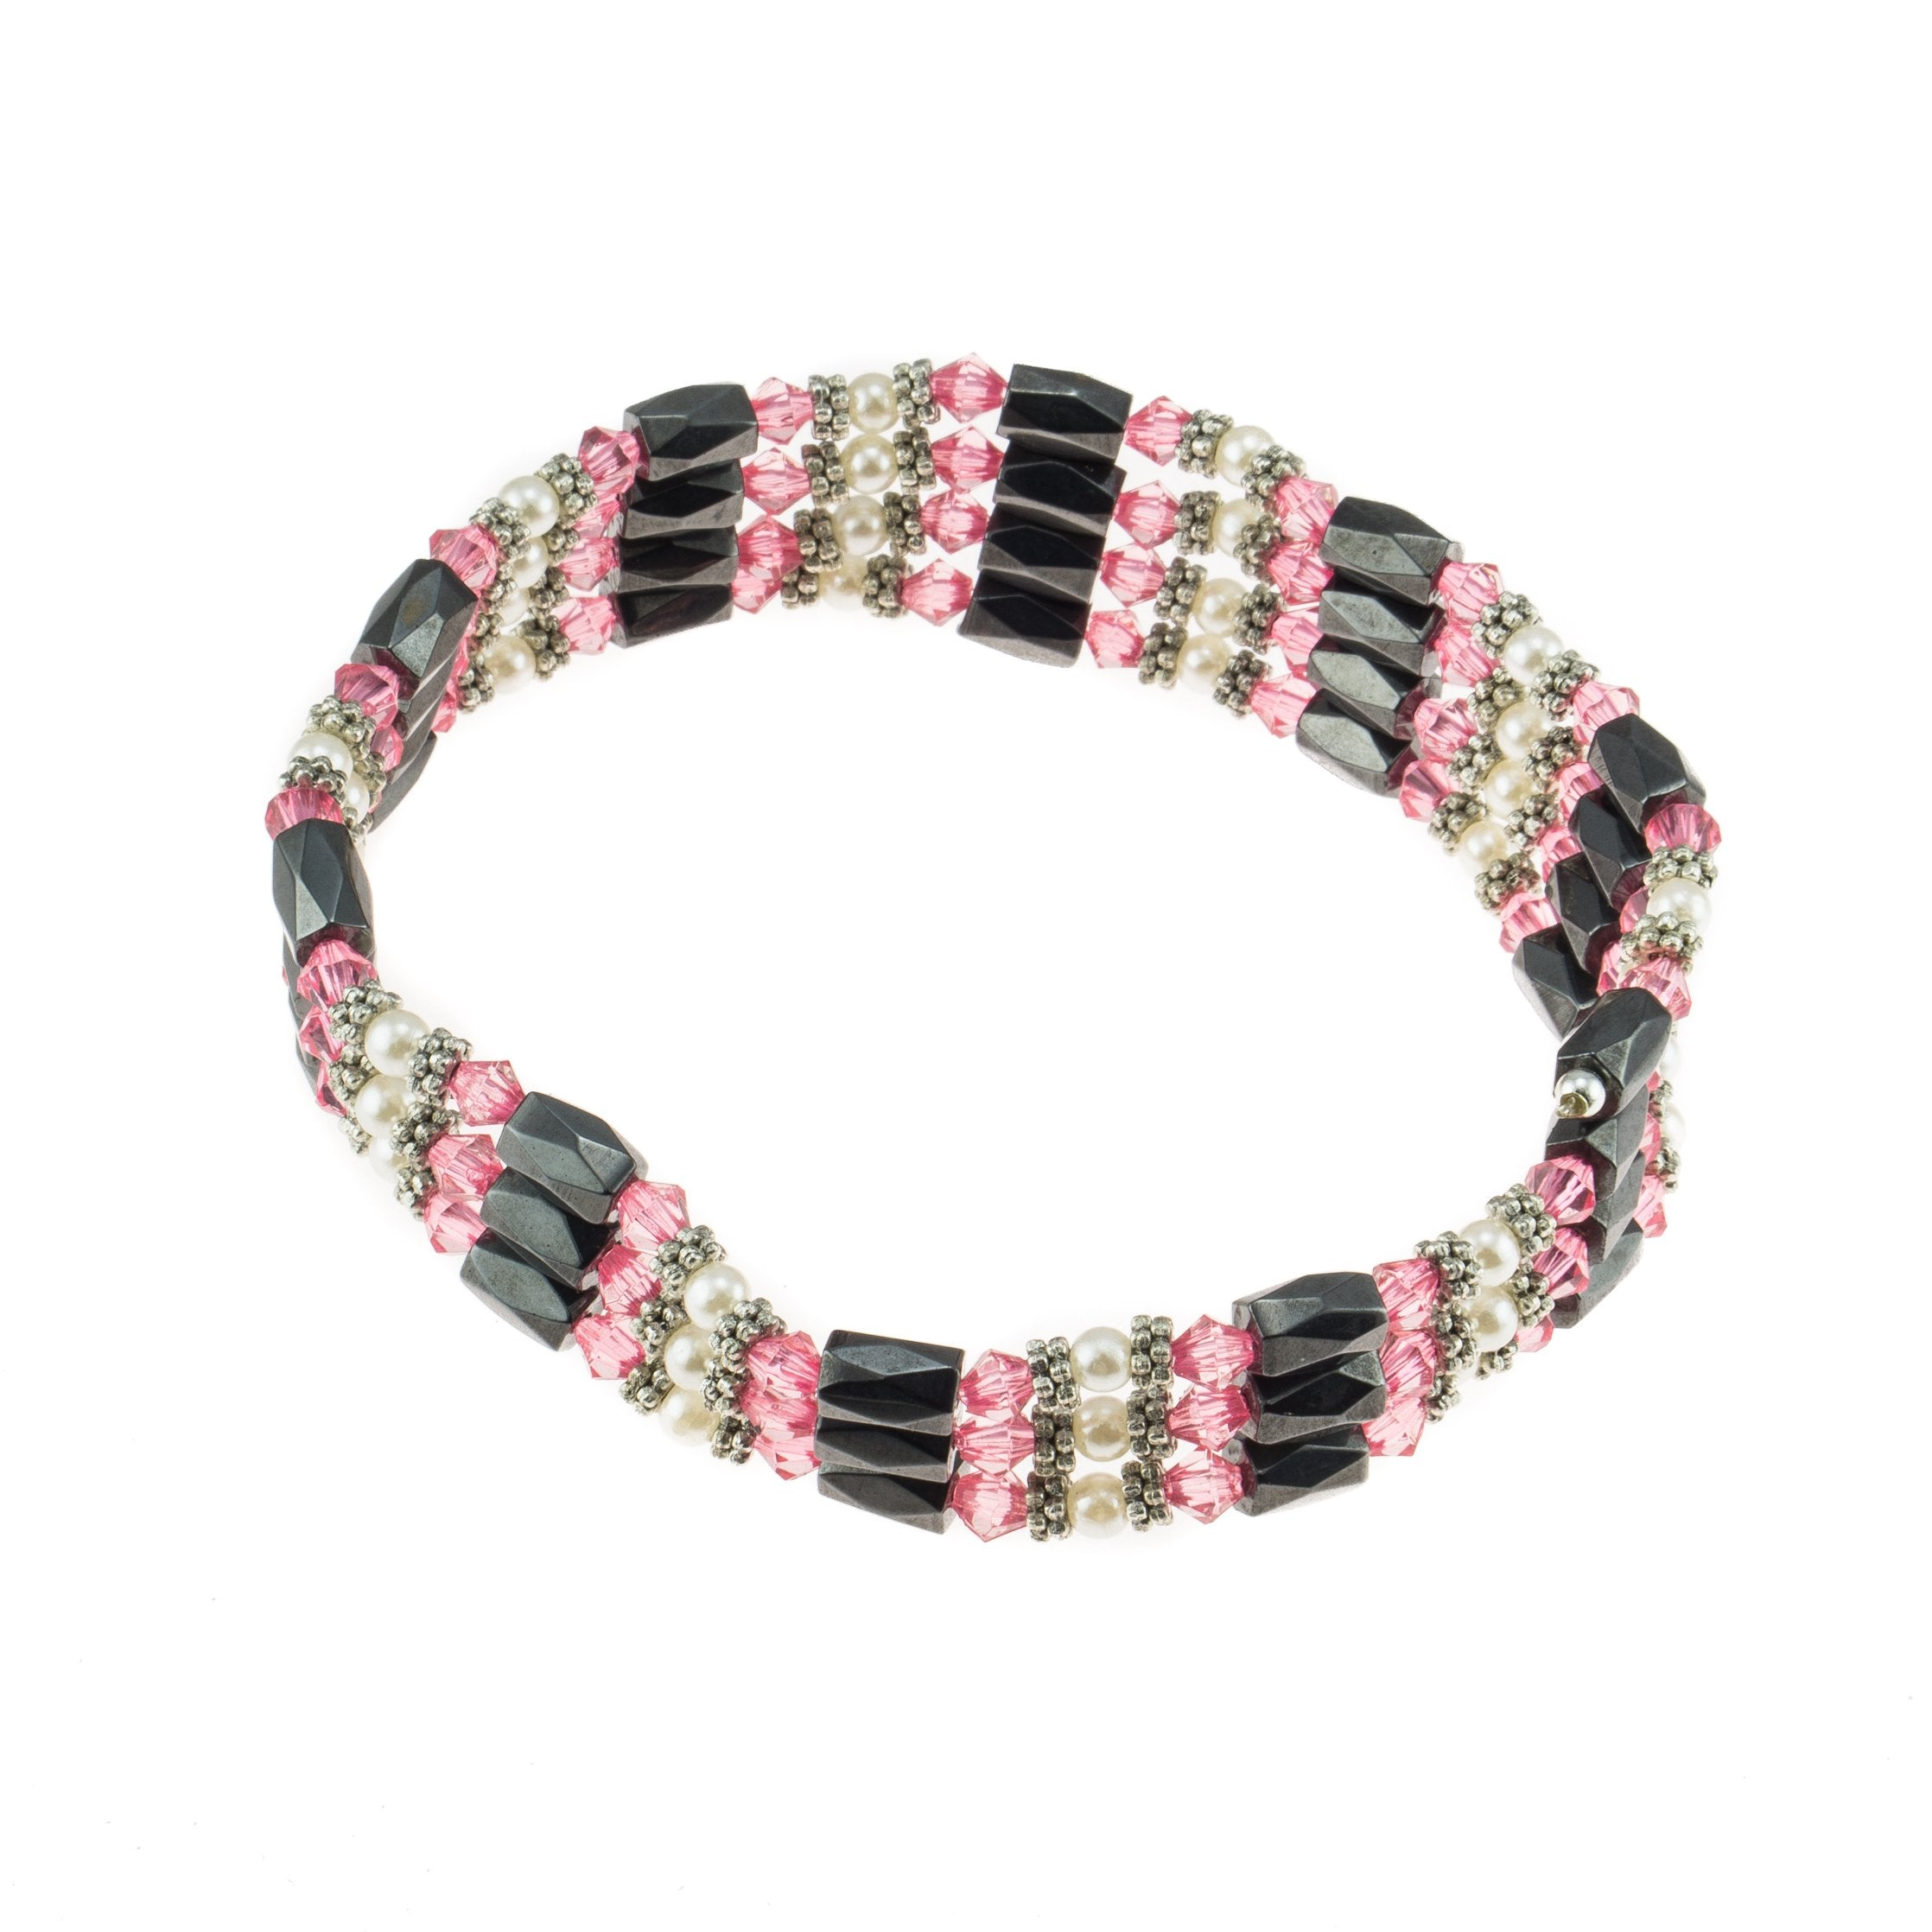 Magnetic Hematite Beaded Wrap Bracelet, Anklet or Necklace with Genuine Fresh Water Pearls (Pink)